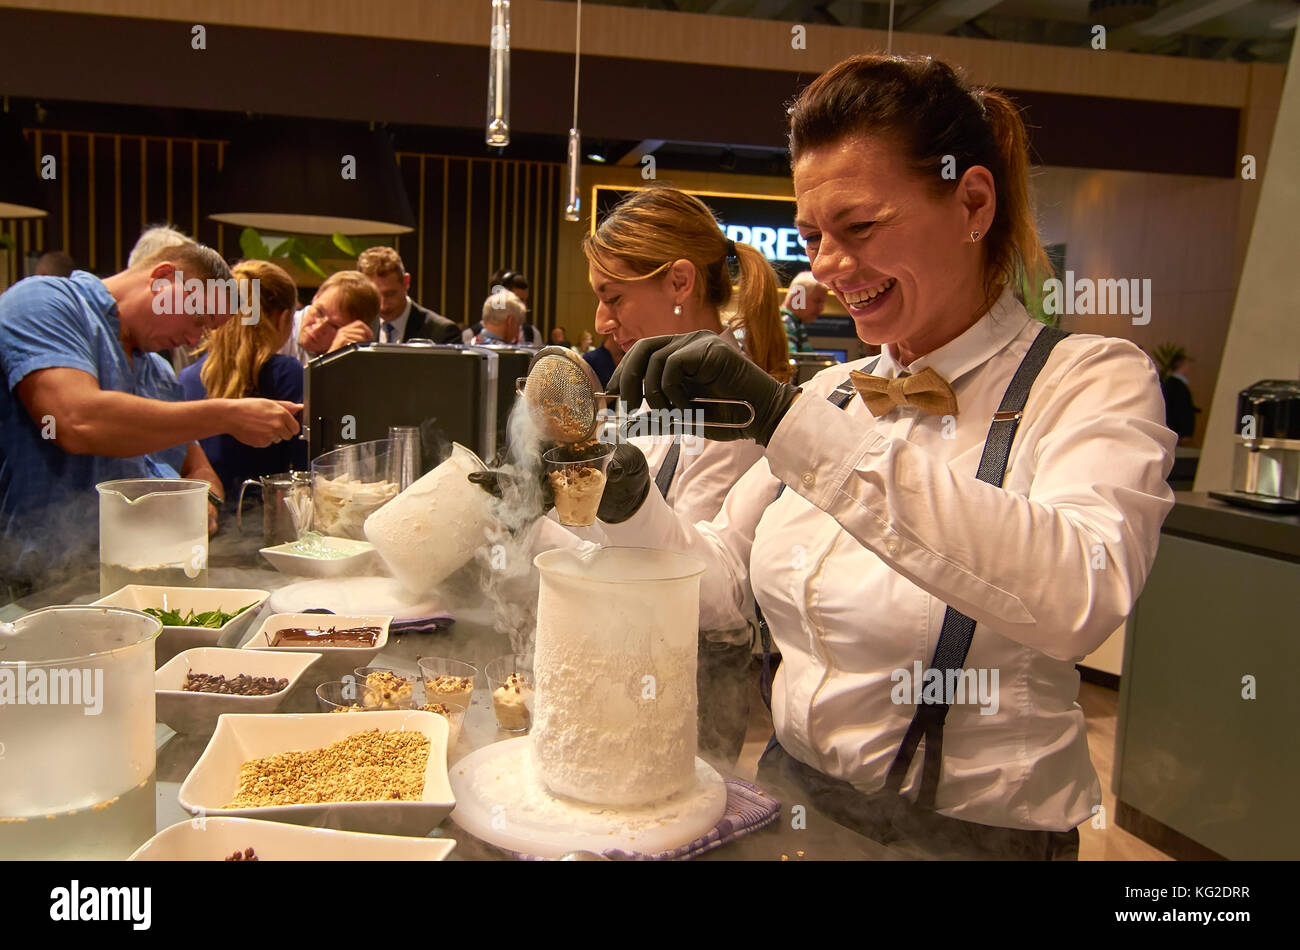 display-of-molecular-gastronomy-female-c